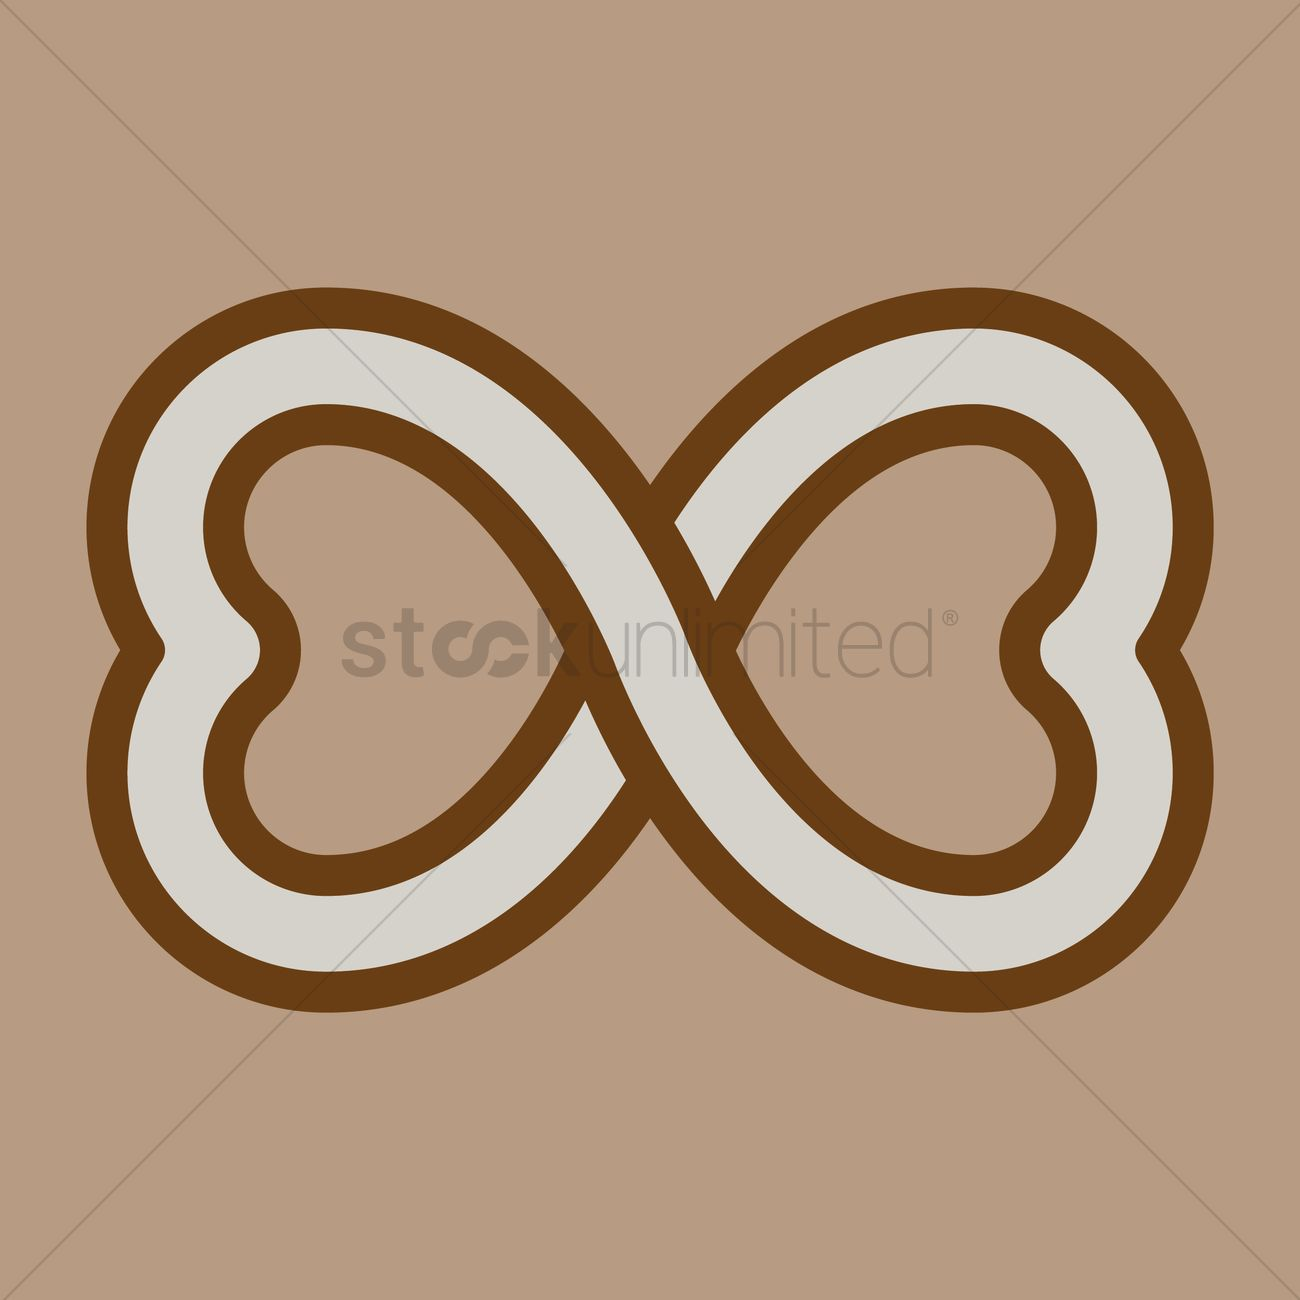 Heart shaped infinity symbol vector image 1308682 stockunlimited heart shaped infinity symbol vector graphic buycottarizona Gallery